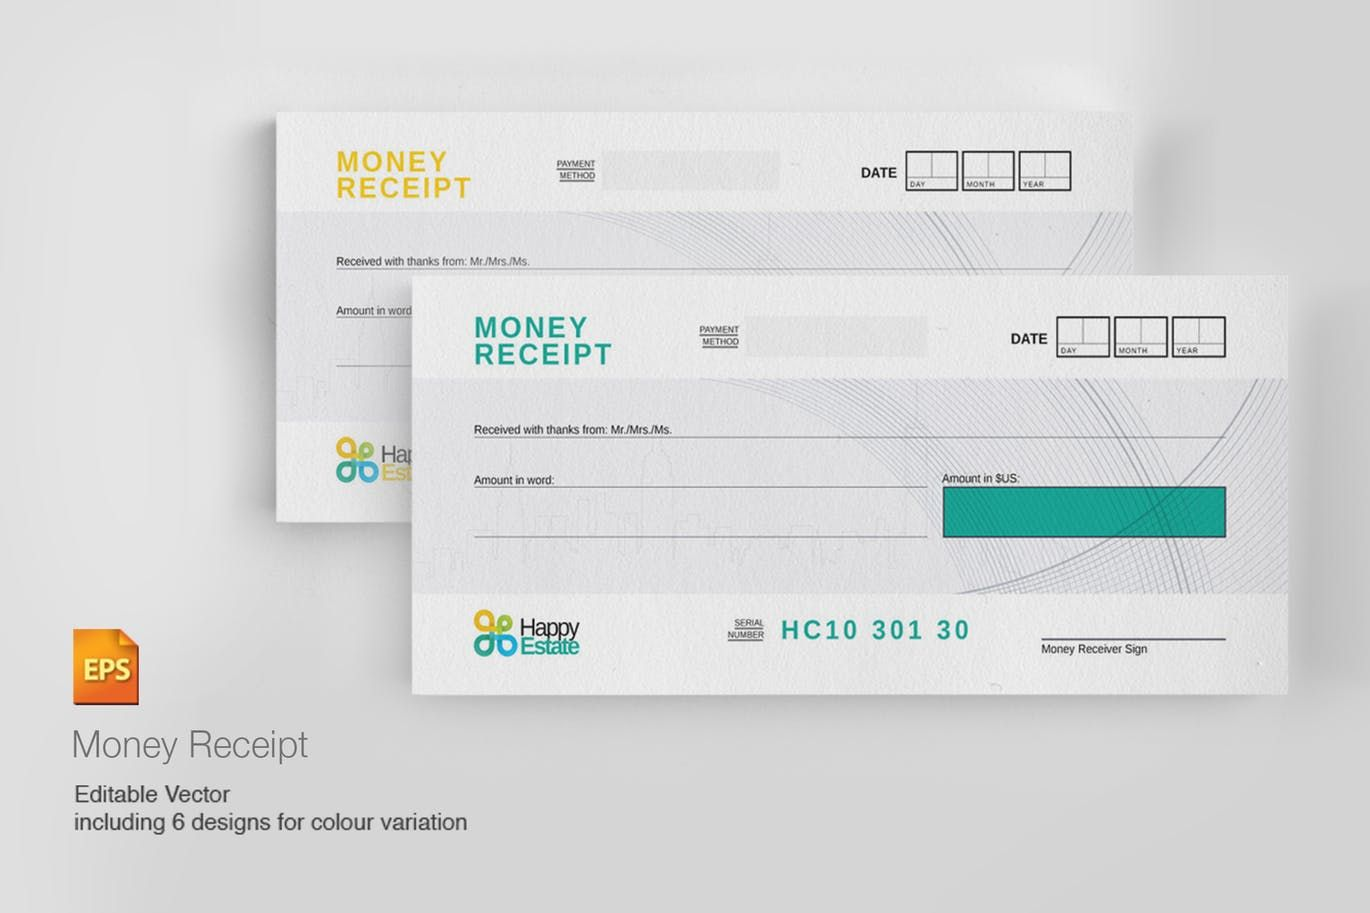 Money Receipt Voucher Template Eps Voucher Design Gift Voucher Design Bio Data For Marriage